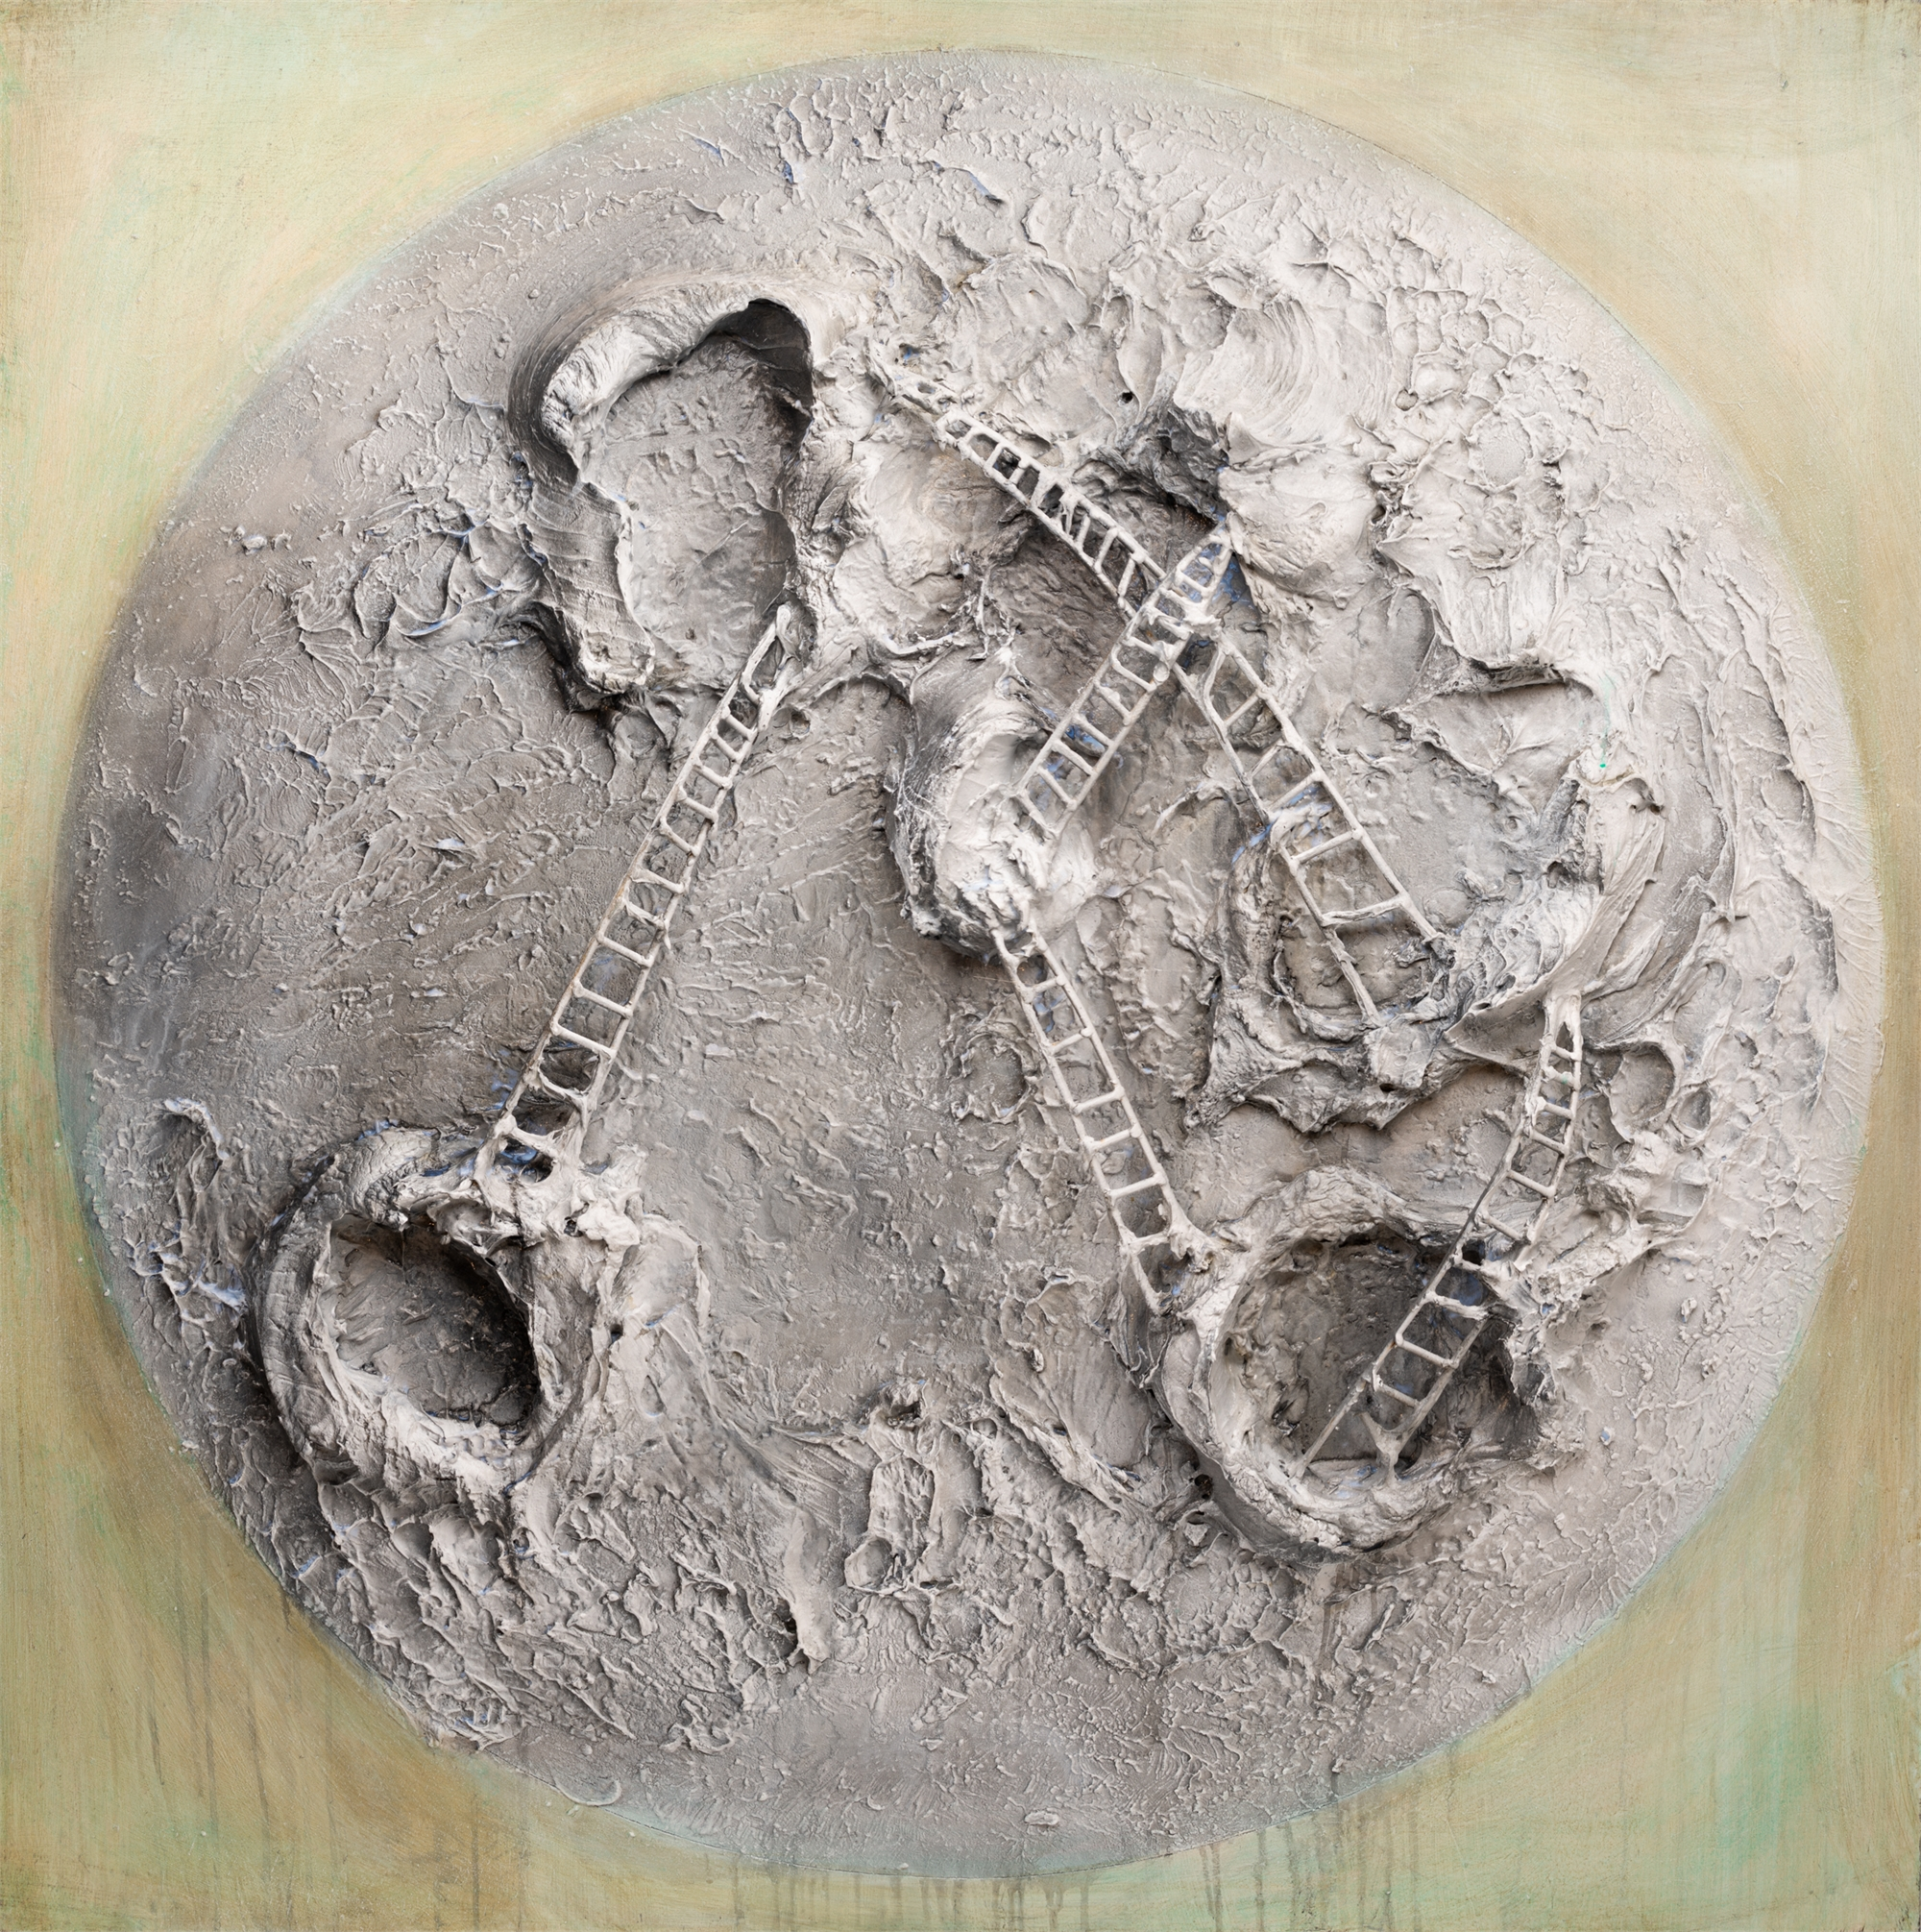 MOON AND LADDERS MS-60x60-2019-317 by JUSTIN GAFFREY